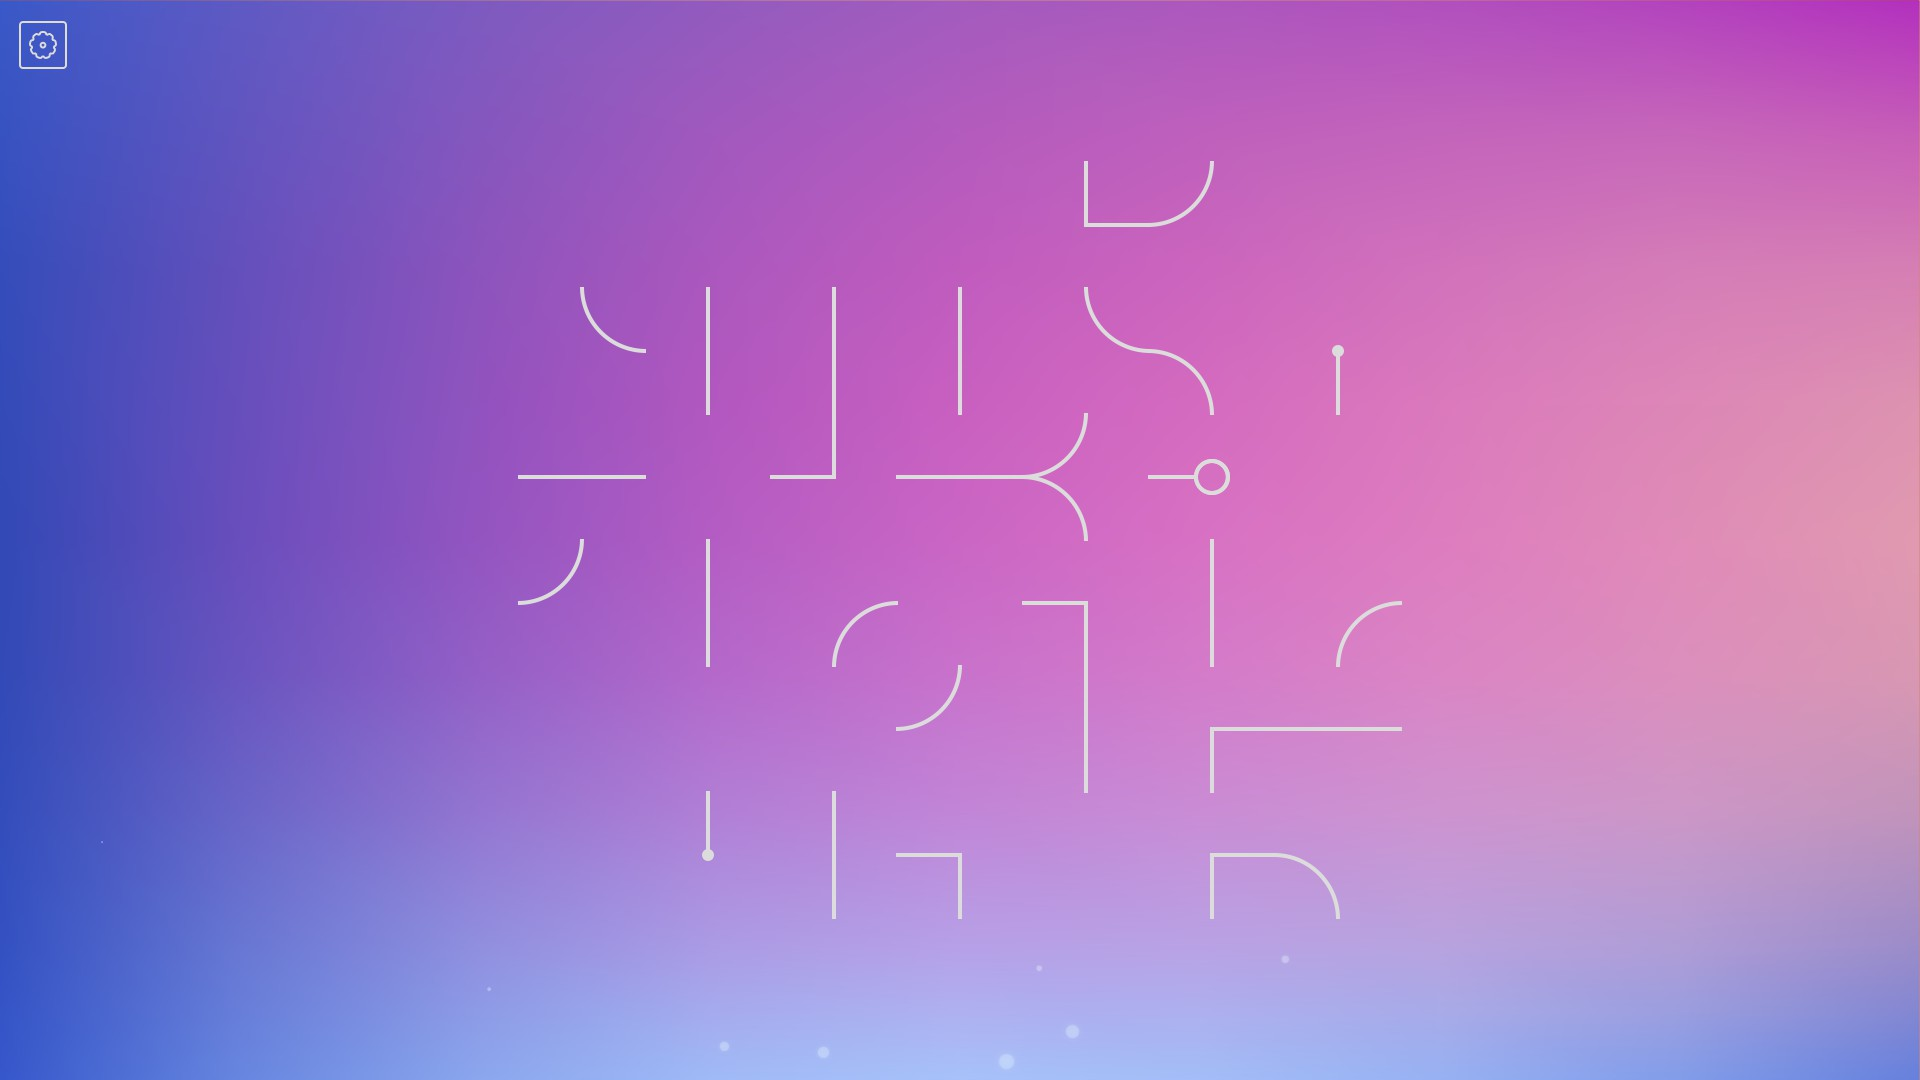 Fragmented white lines on a purple, pink, and blue gradient background